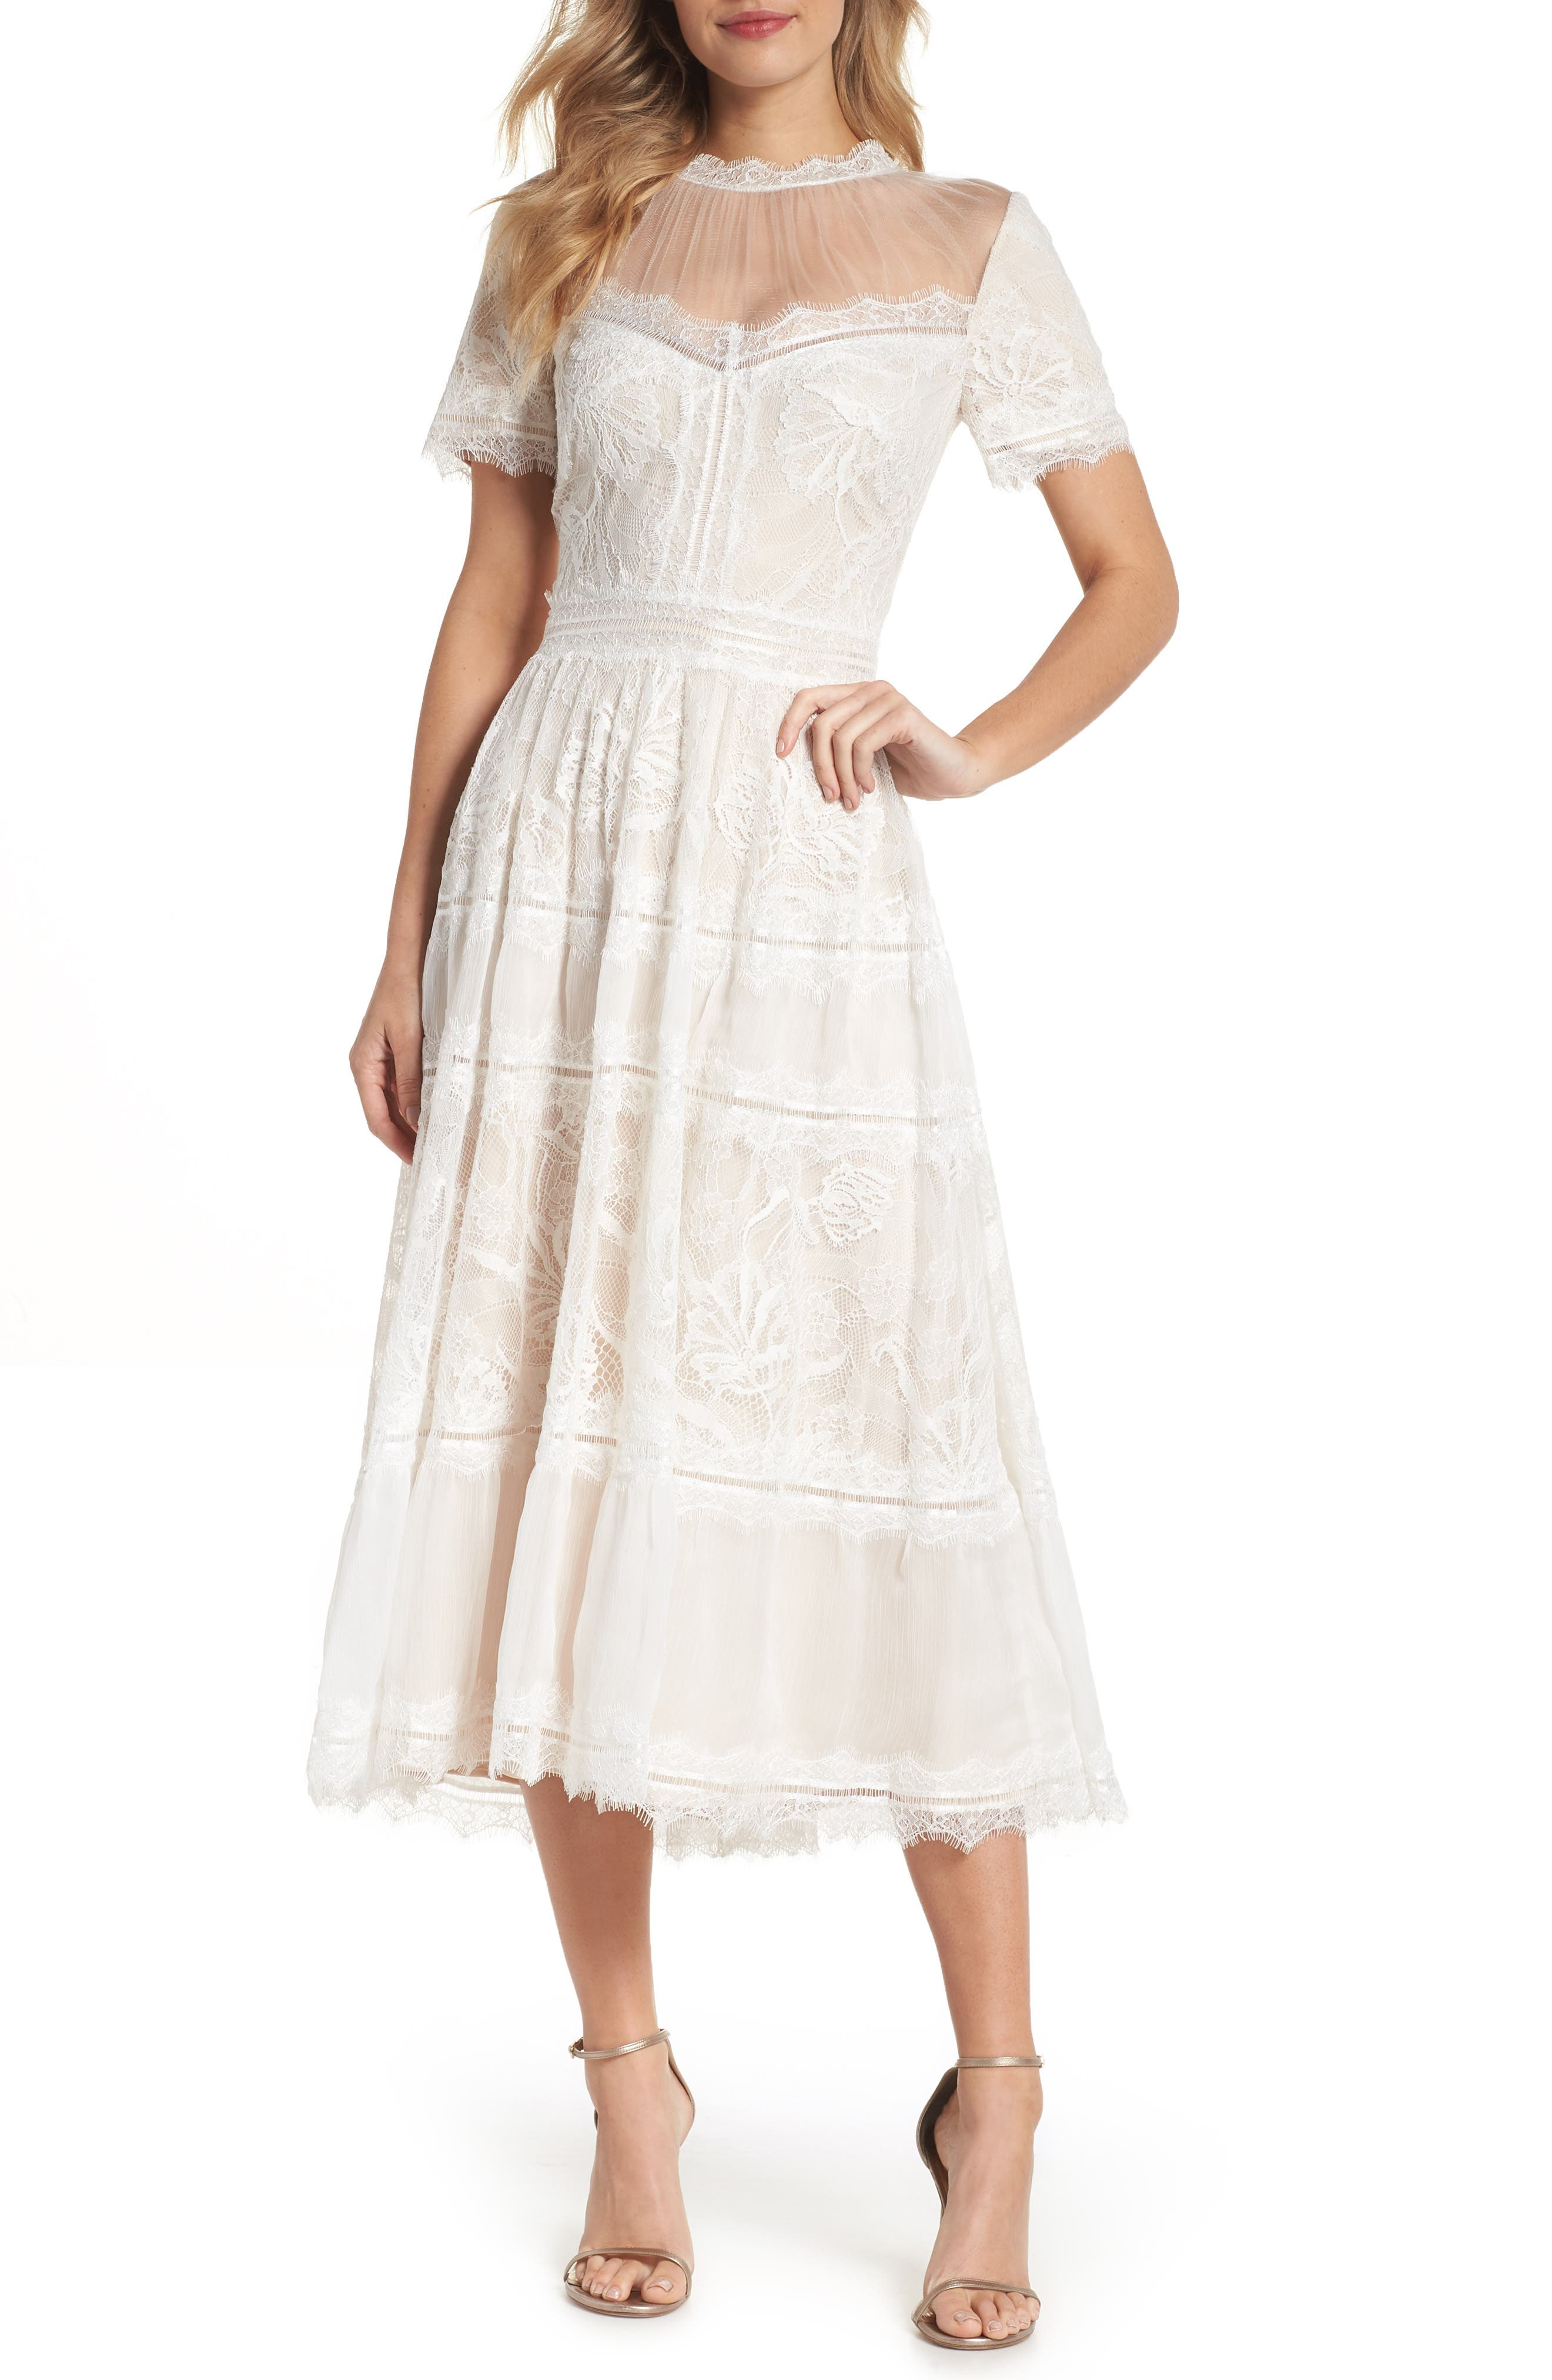 8b576034eb0e 1950s Fashion History: Women's Clothing Womens Tadashi Shoji Lace Midi  Dress Size 14 - Ivory